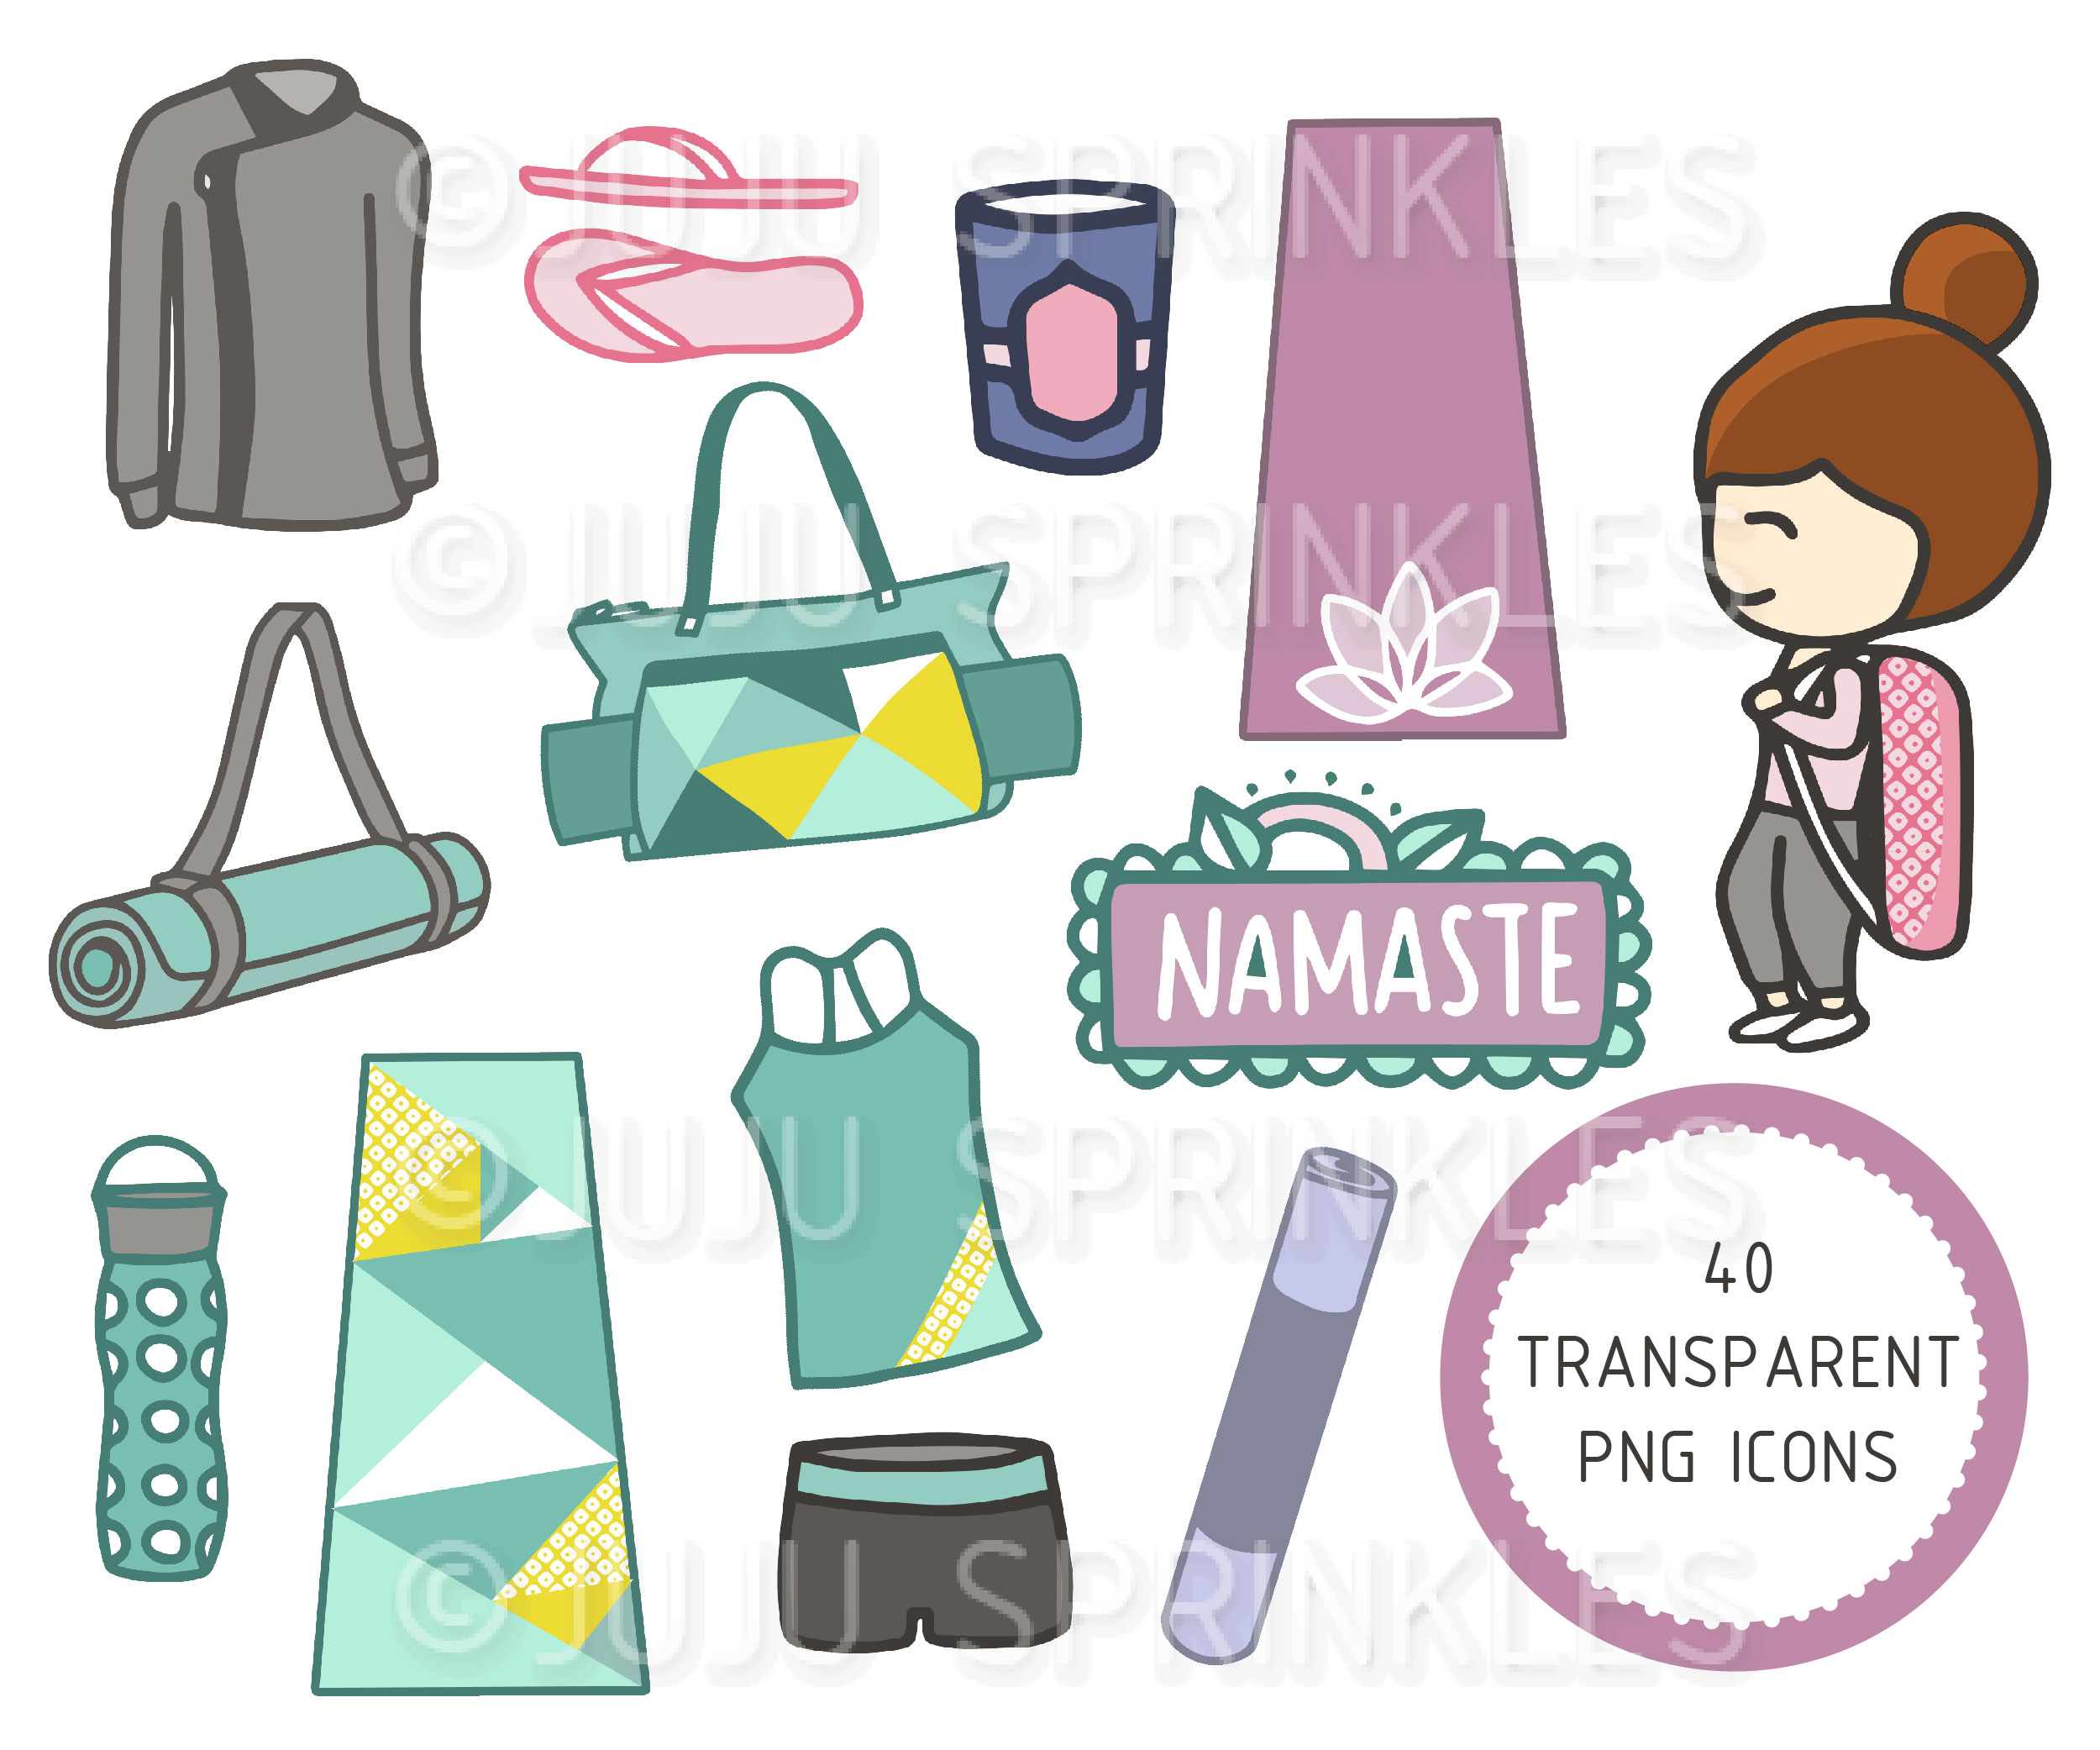 Workout clipart set clipart freeuse stock Yoga Workout Clipart and Sticker Set clipart freeuse stock